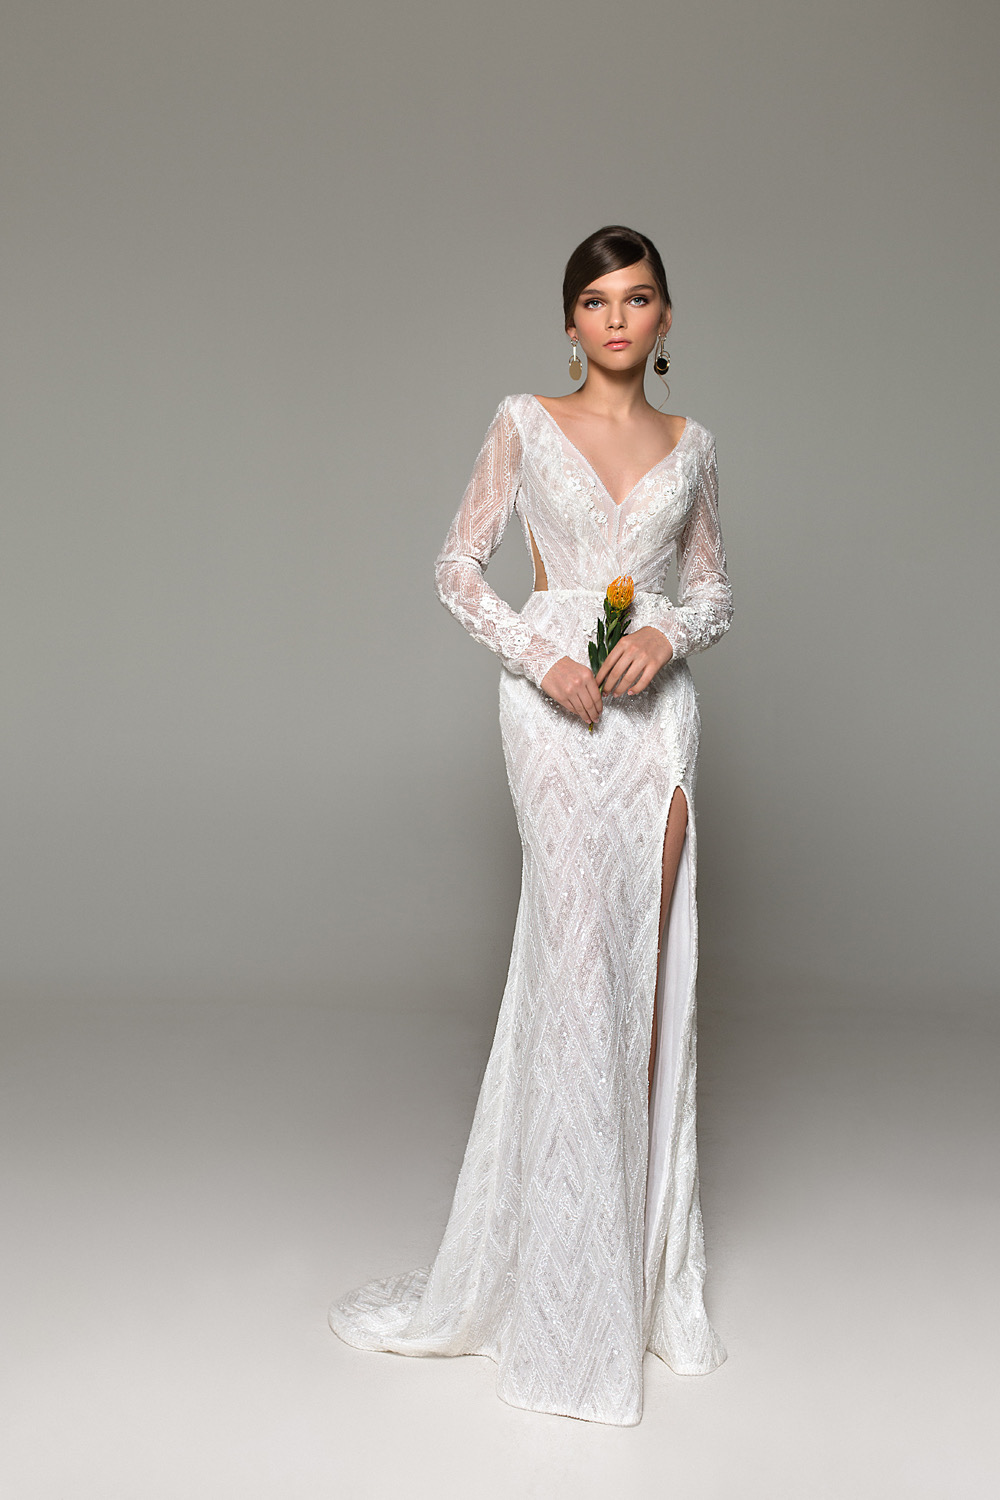 Off The Rack Clearance Gowns Frisco In 2020 Wedding Dresses For Girls Amazing Wedding Dress Boho Wedding Dress